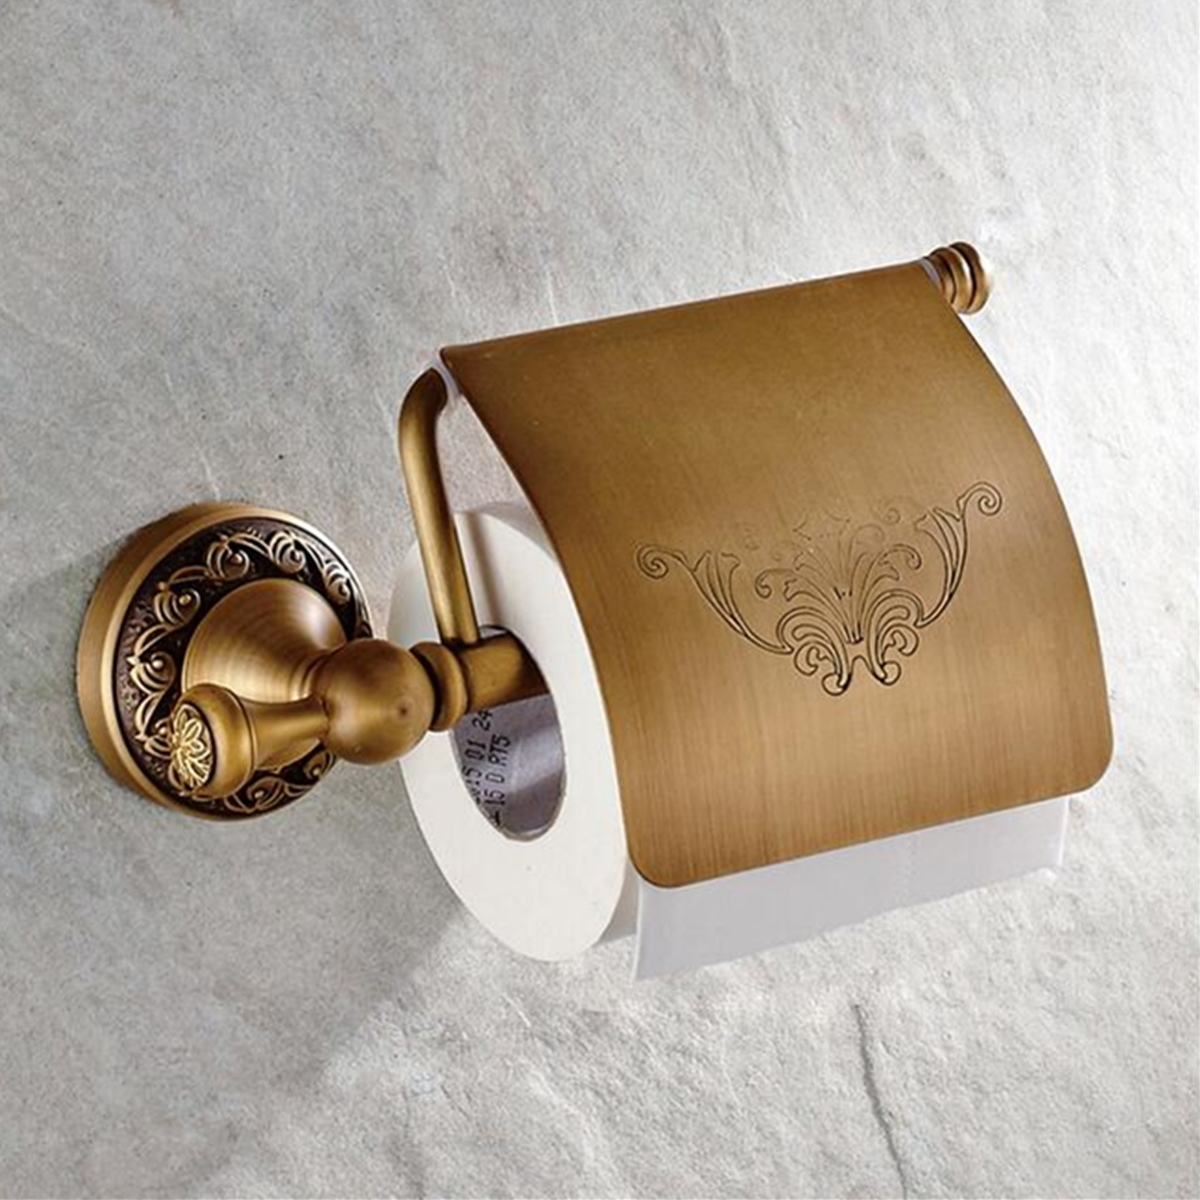 Retro Wall Mounted Antique Brass Toilet Paper Container Tissue Roll Bar Shelf Holder Bathroom